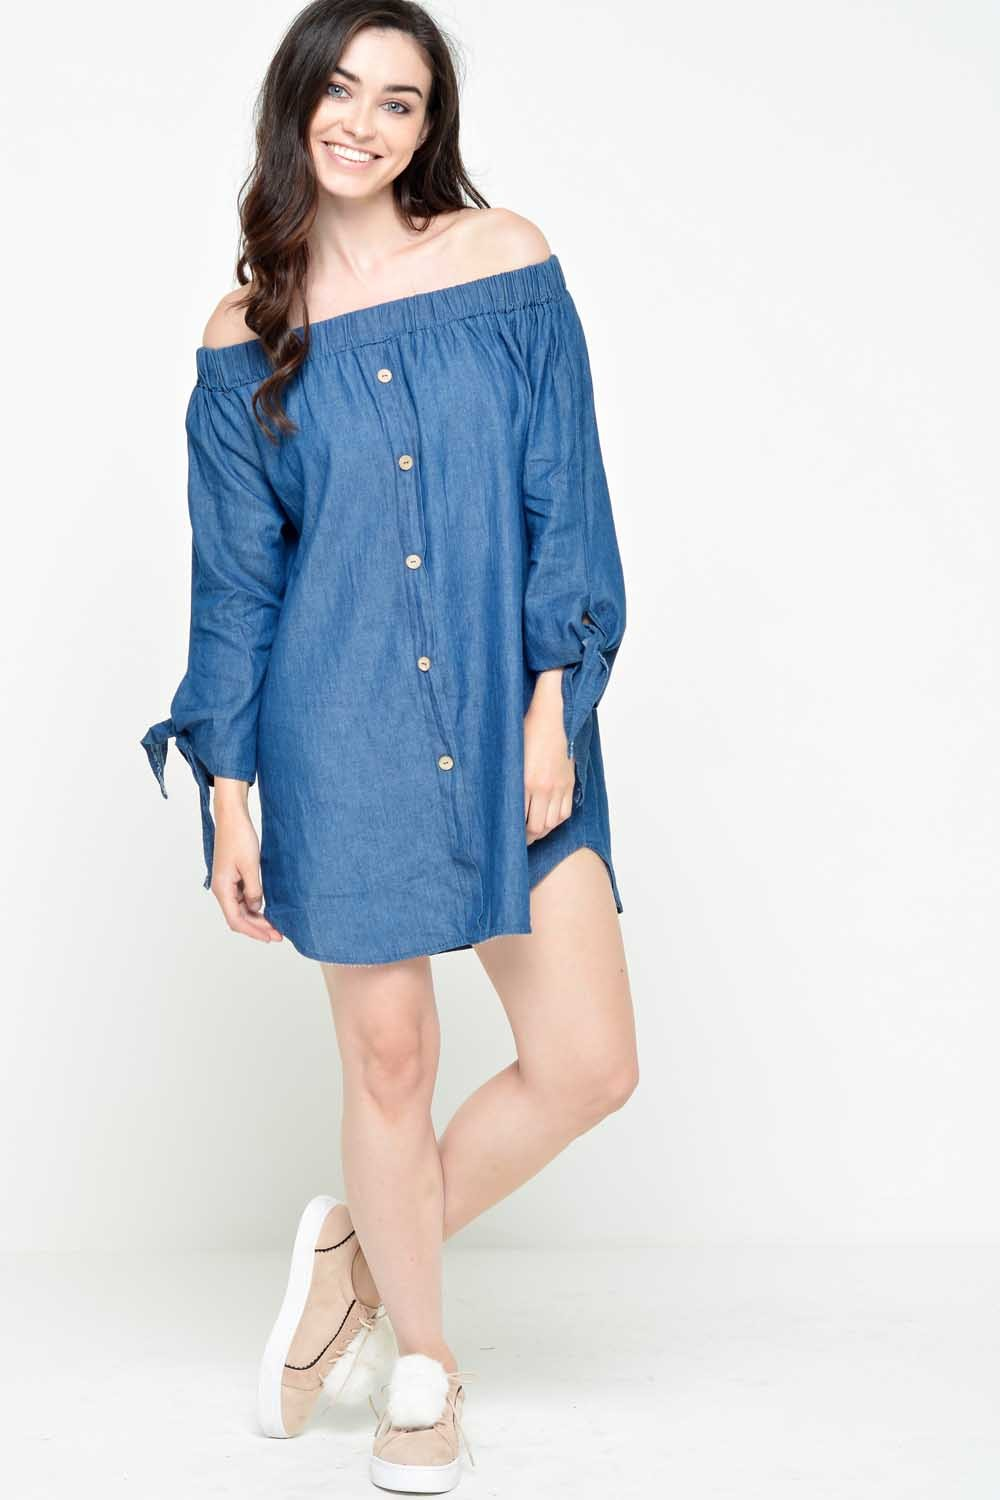 251c189c1b More Views. Carol Off Shoulder Dress in Medium Denim